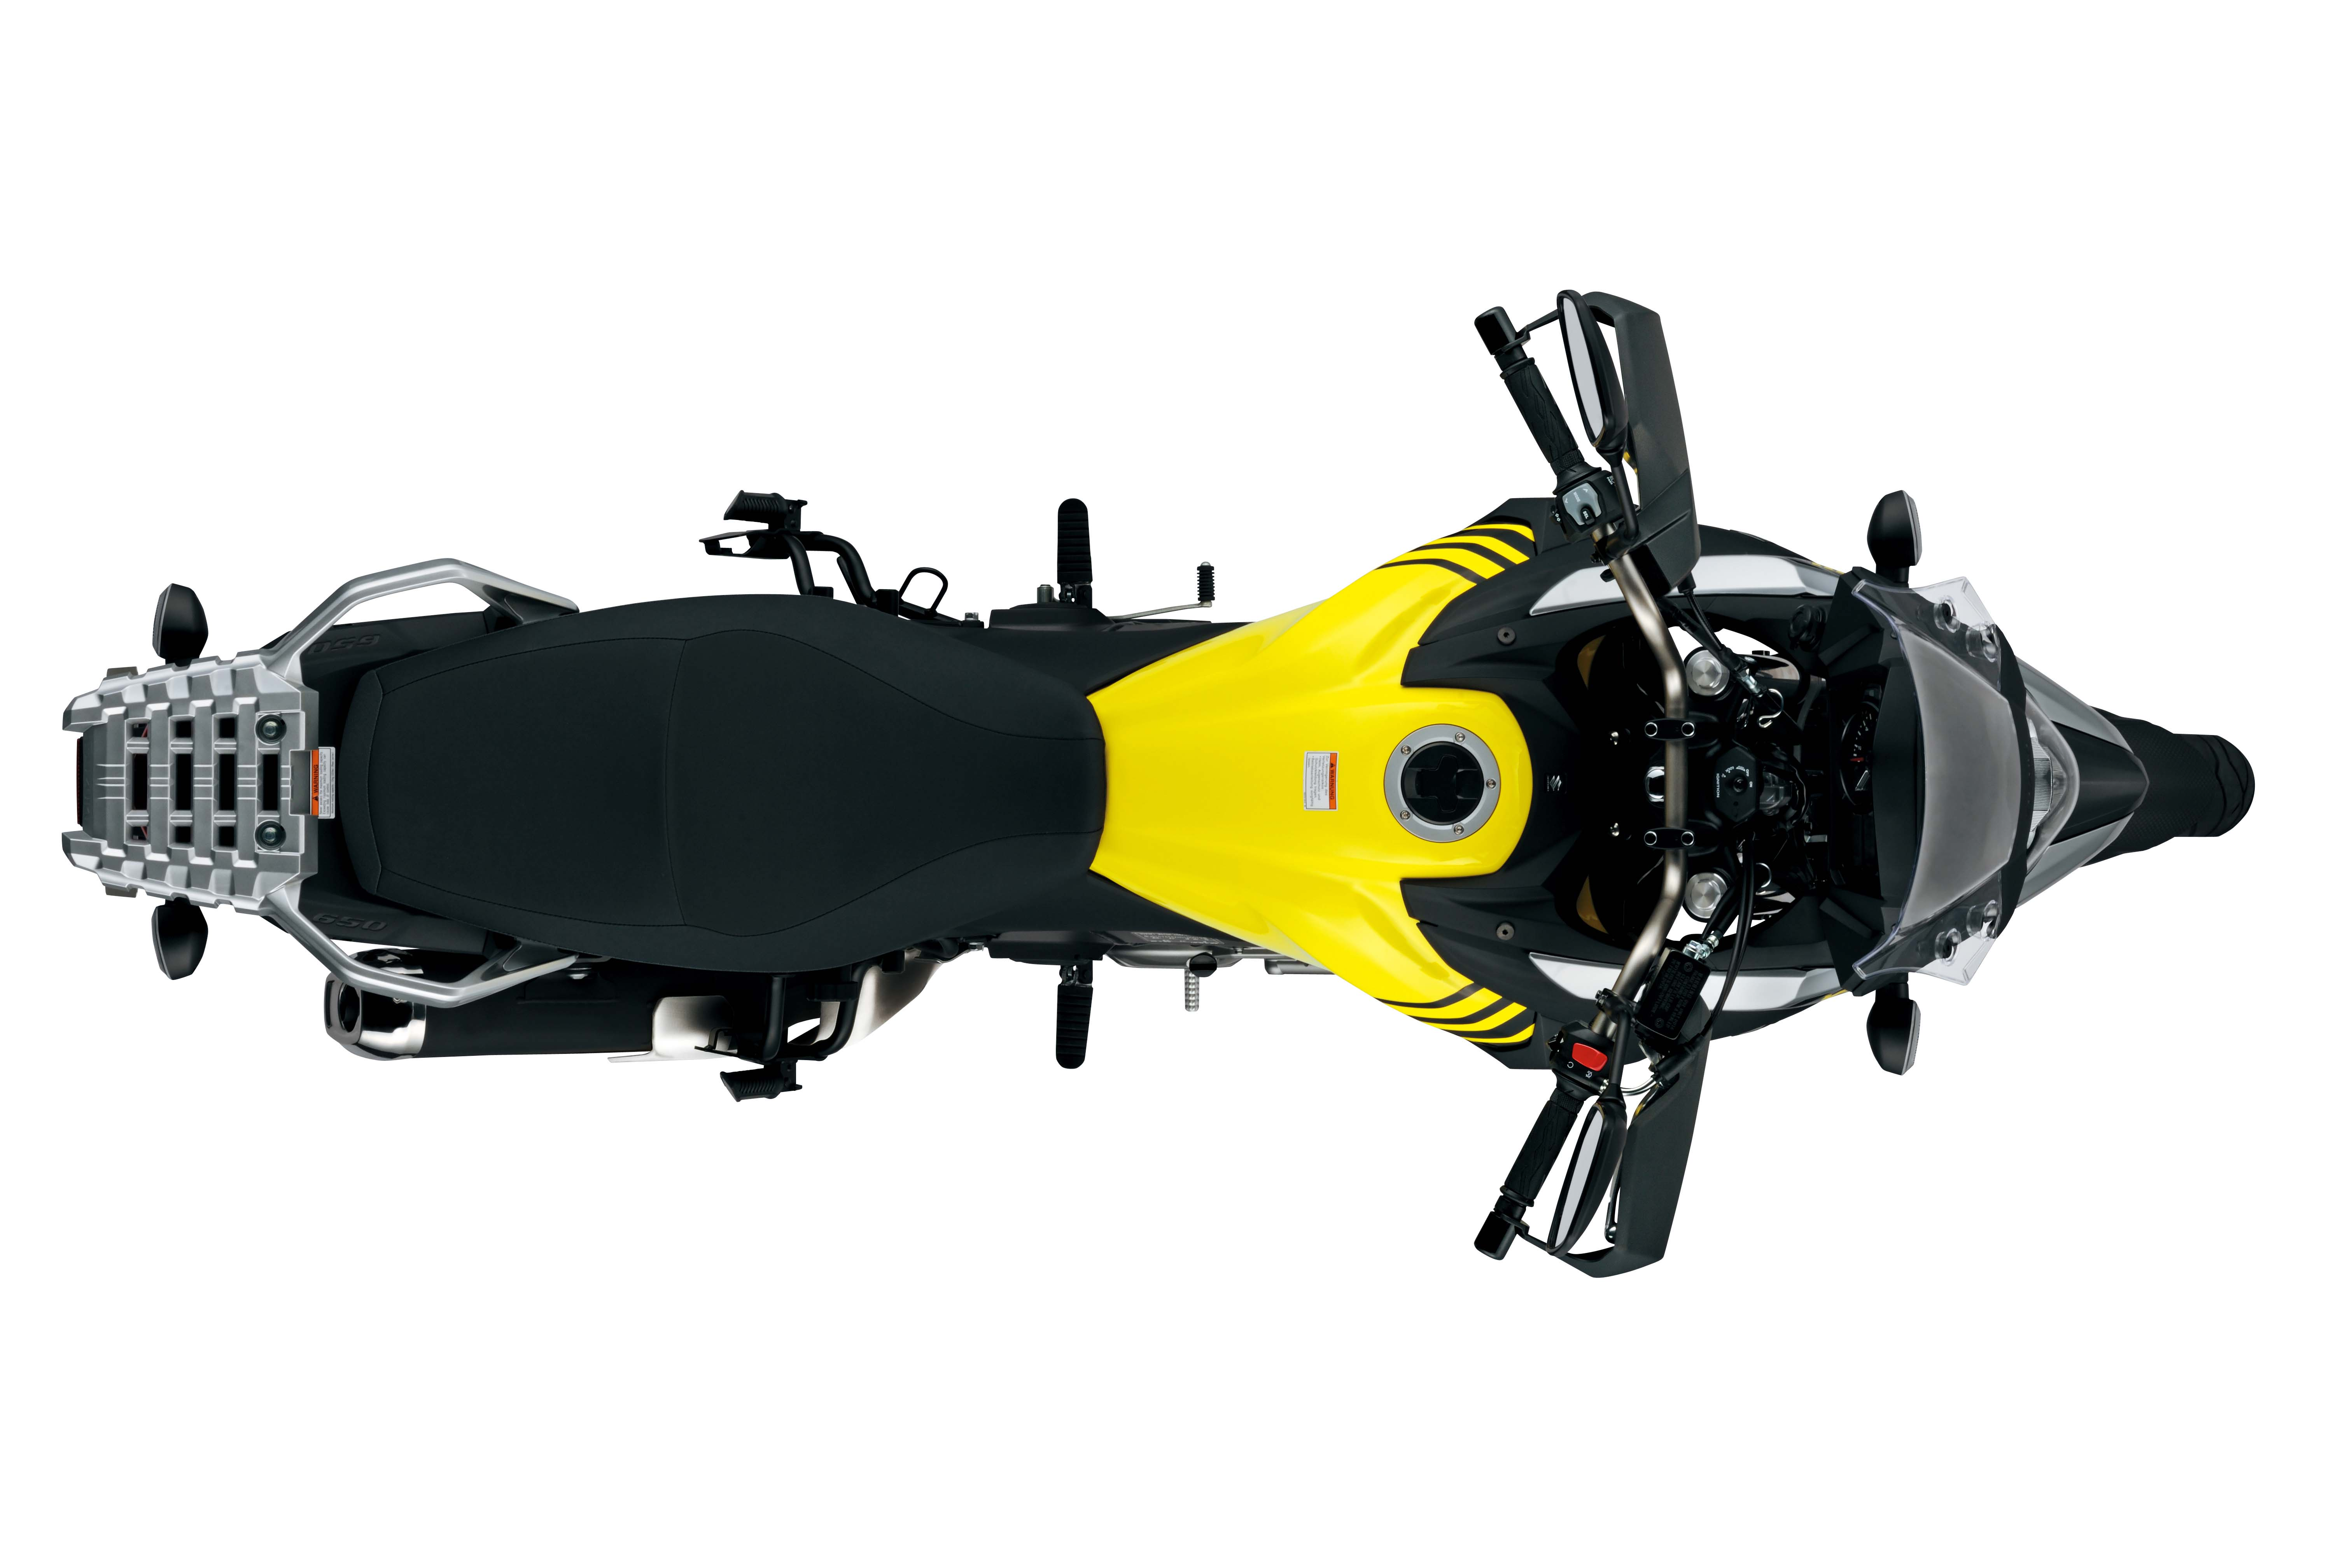 2018 Suzuki V-Strom 1000 and 1000XT - First Look - Motorcycle.com